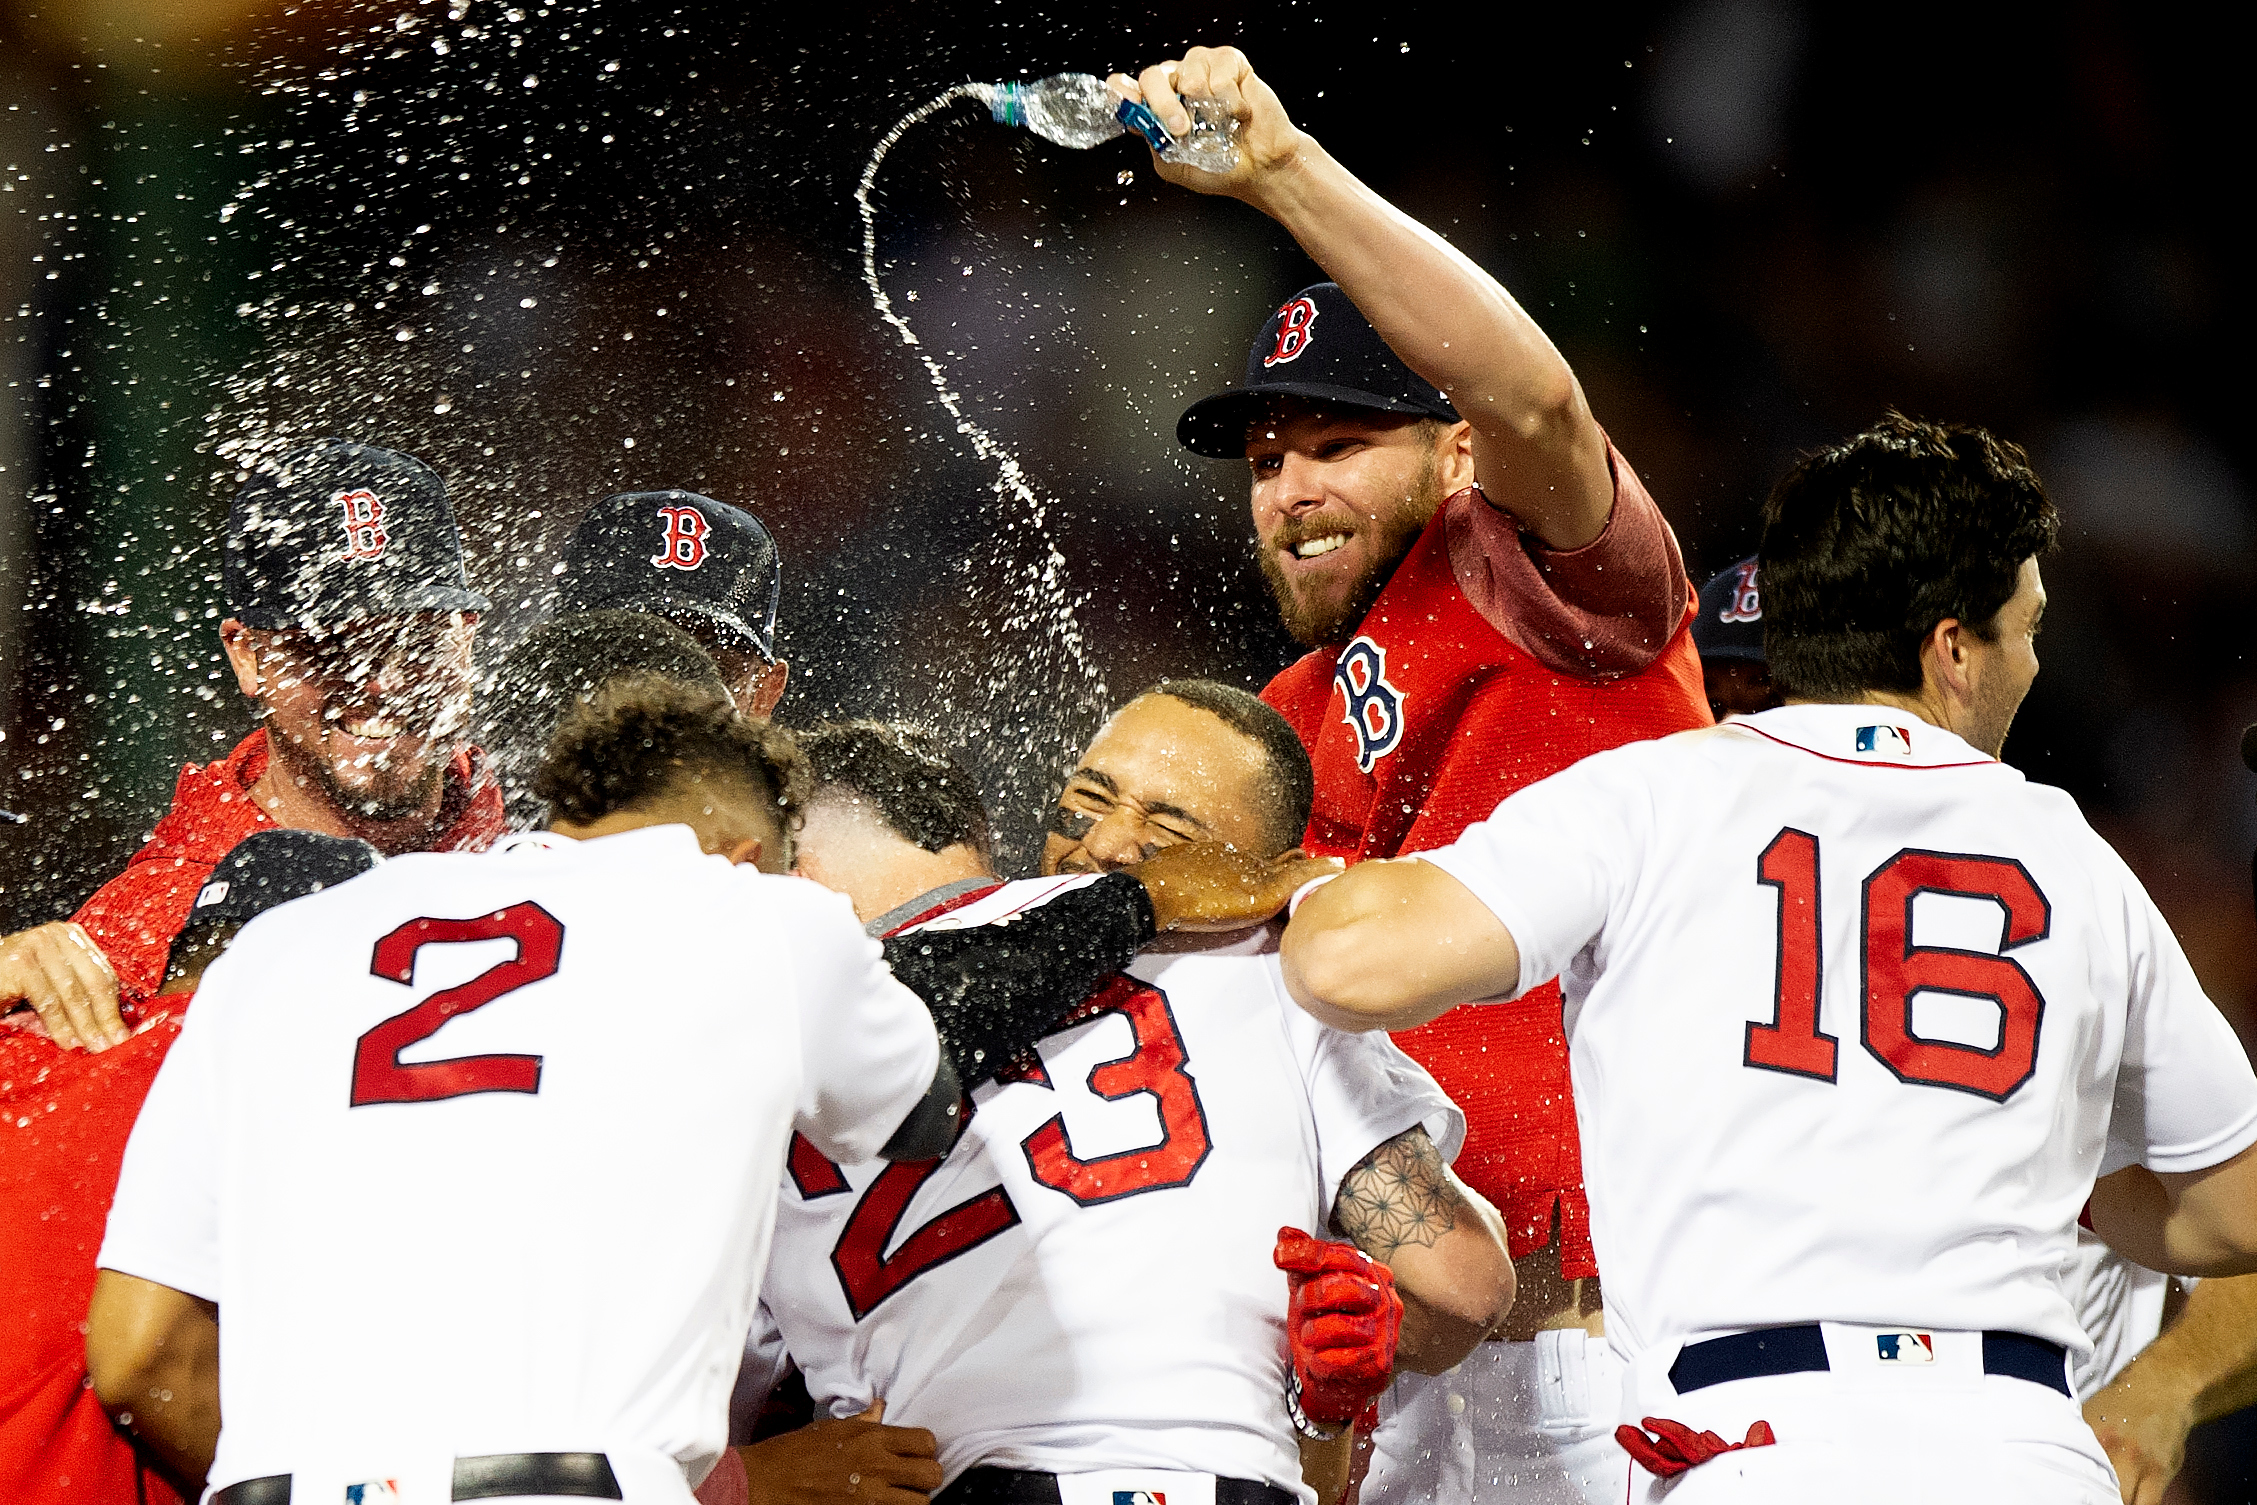 The Boston Red Sox swarm catcher Blake Swihart after he made a hit that ended the thirteen-inning game against the Philadelphia Phillies at Fenway Park in Boston, Massachusetts on Monday, July 30, 2018.